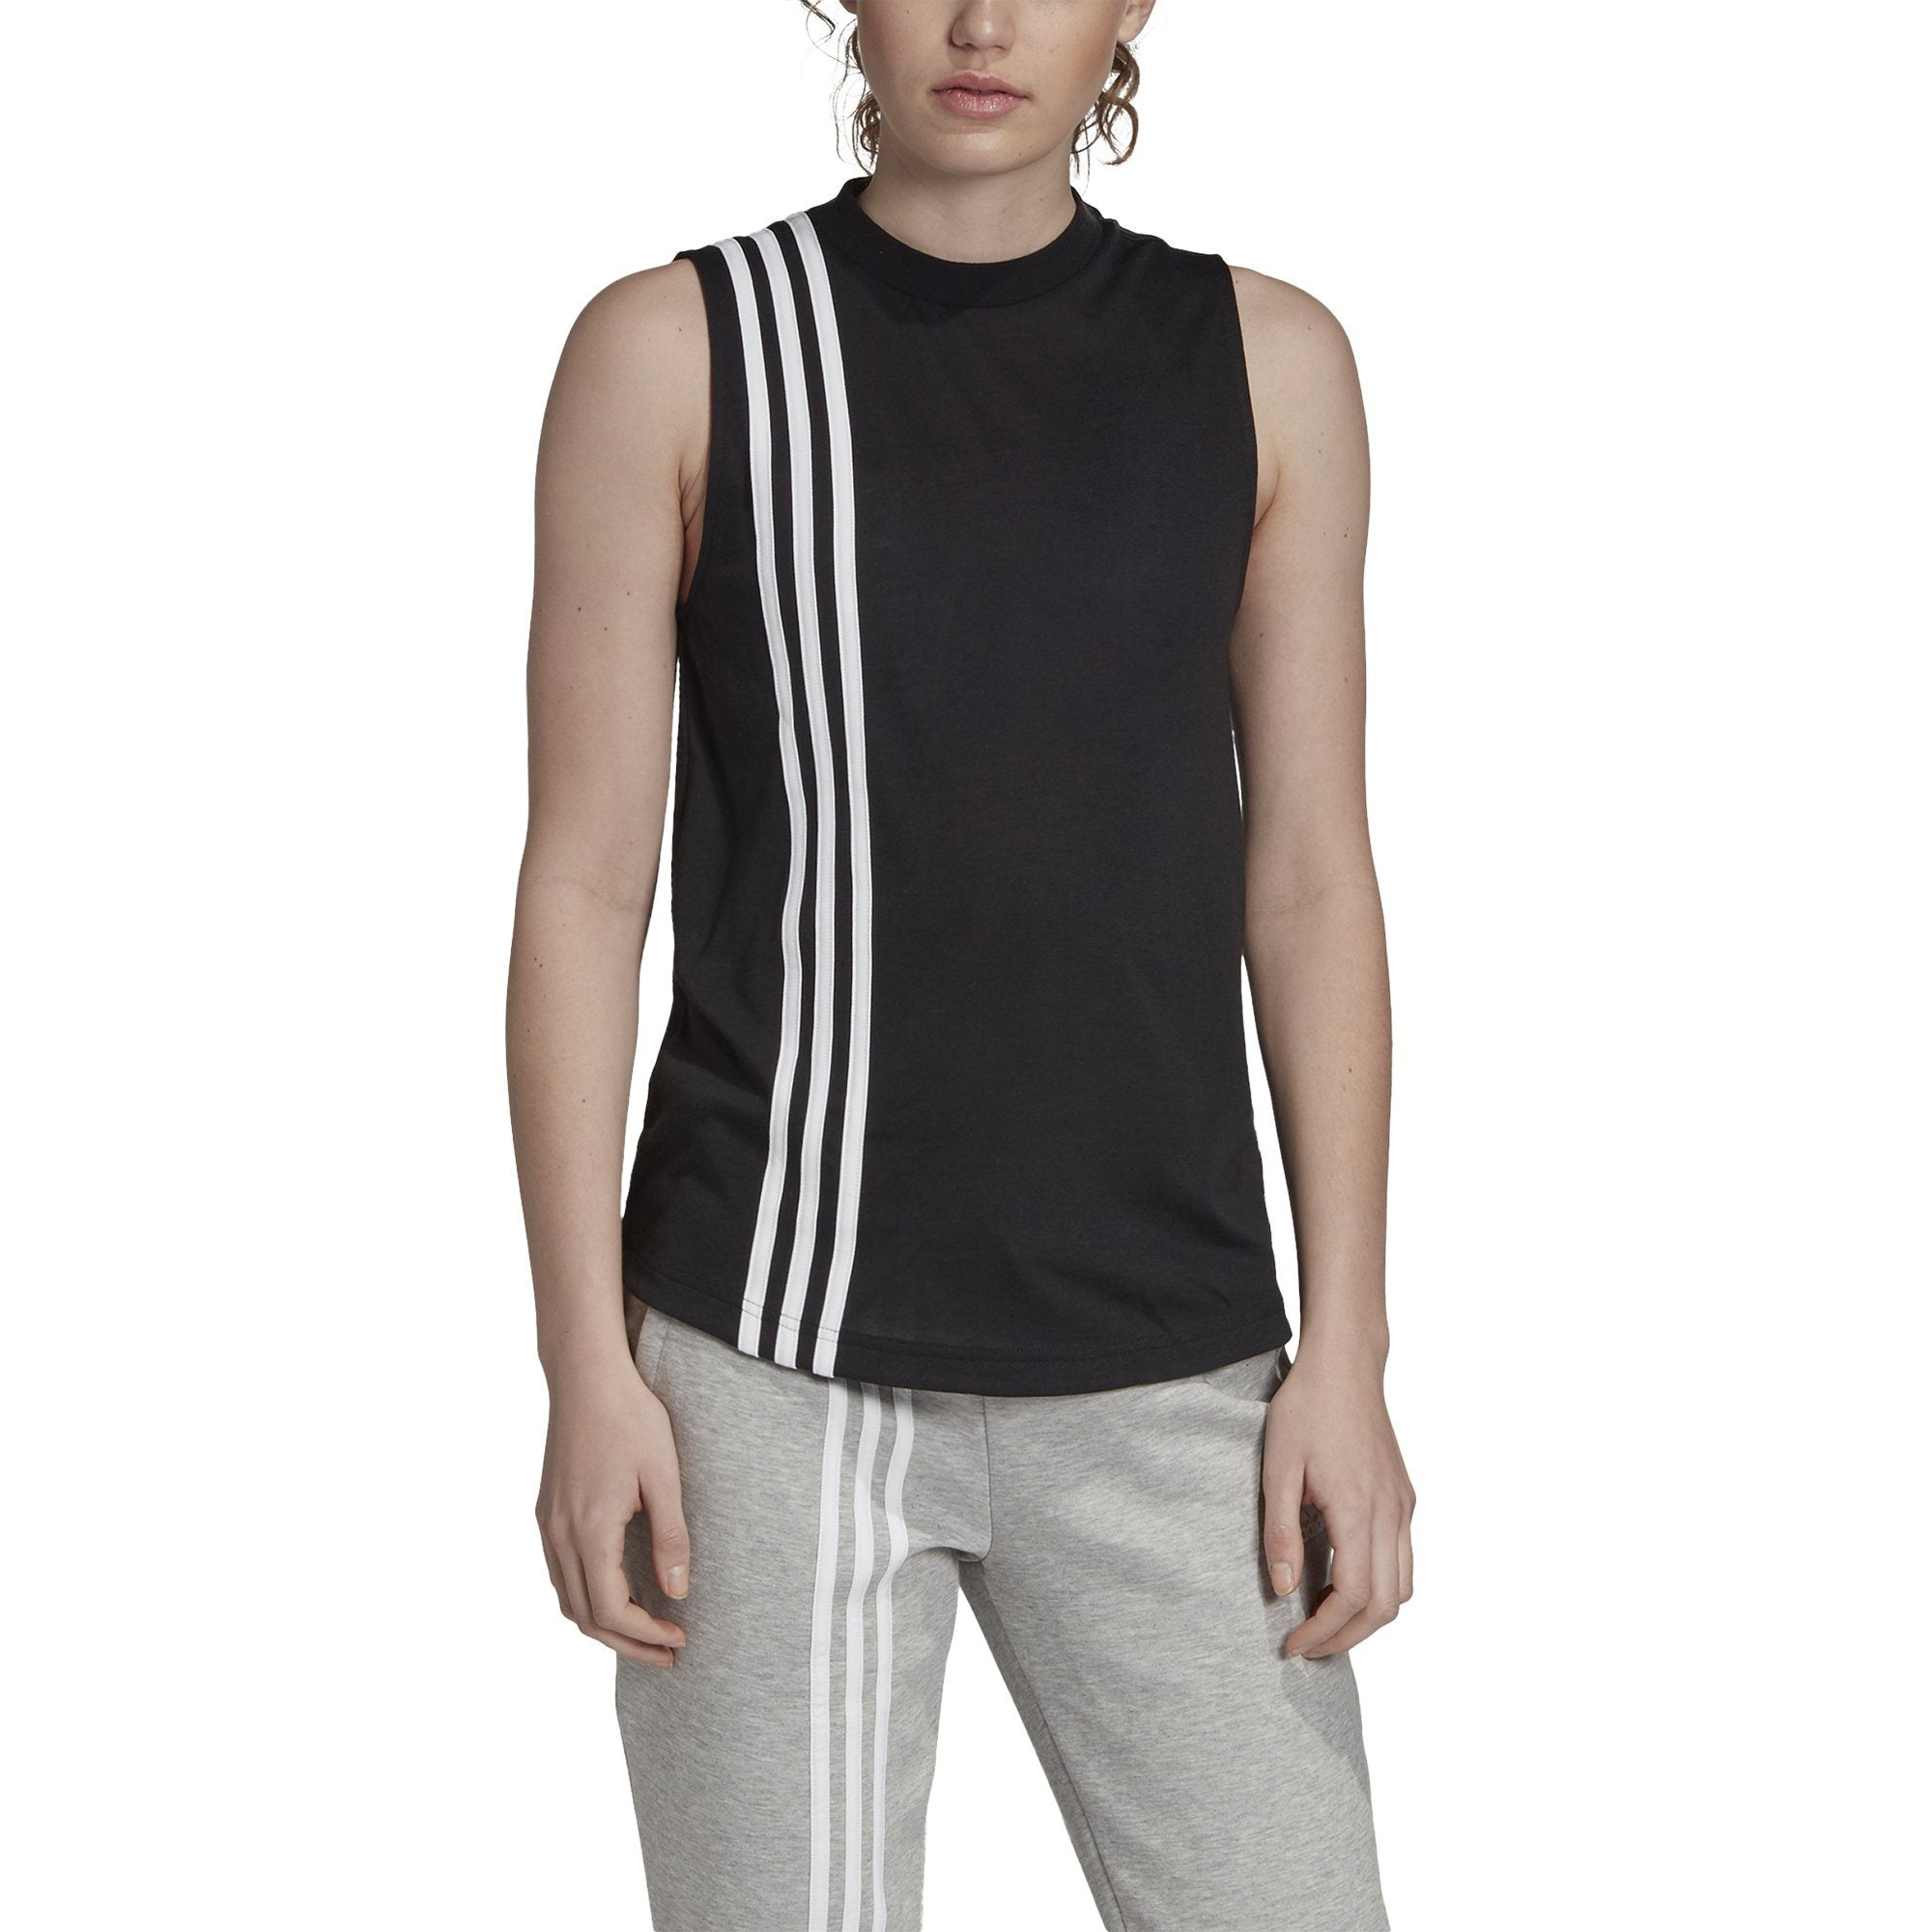 Adidas Womens Must Haves 3-Stripes Tank Top - black/white SP-APPARELTANK-WOMENS Adidas